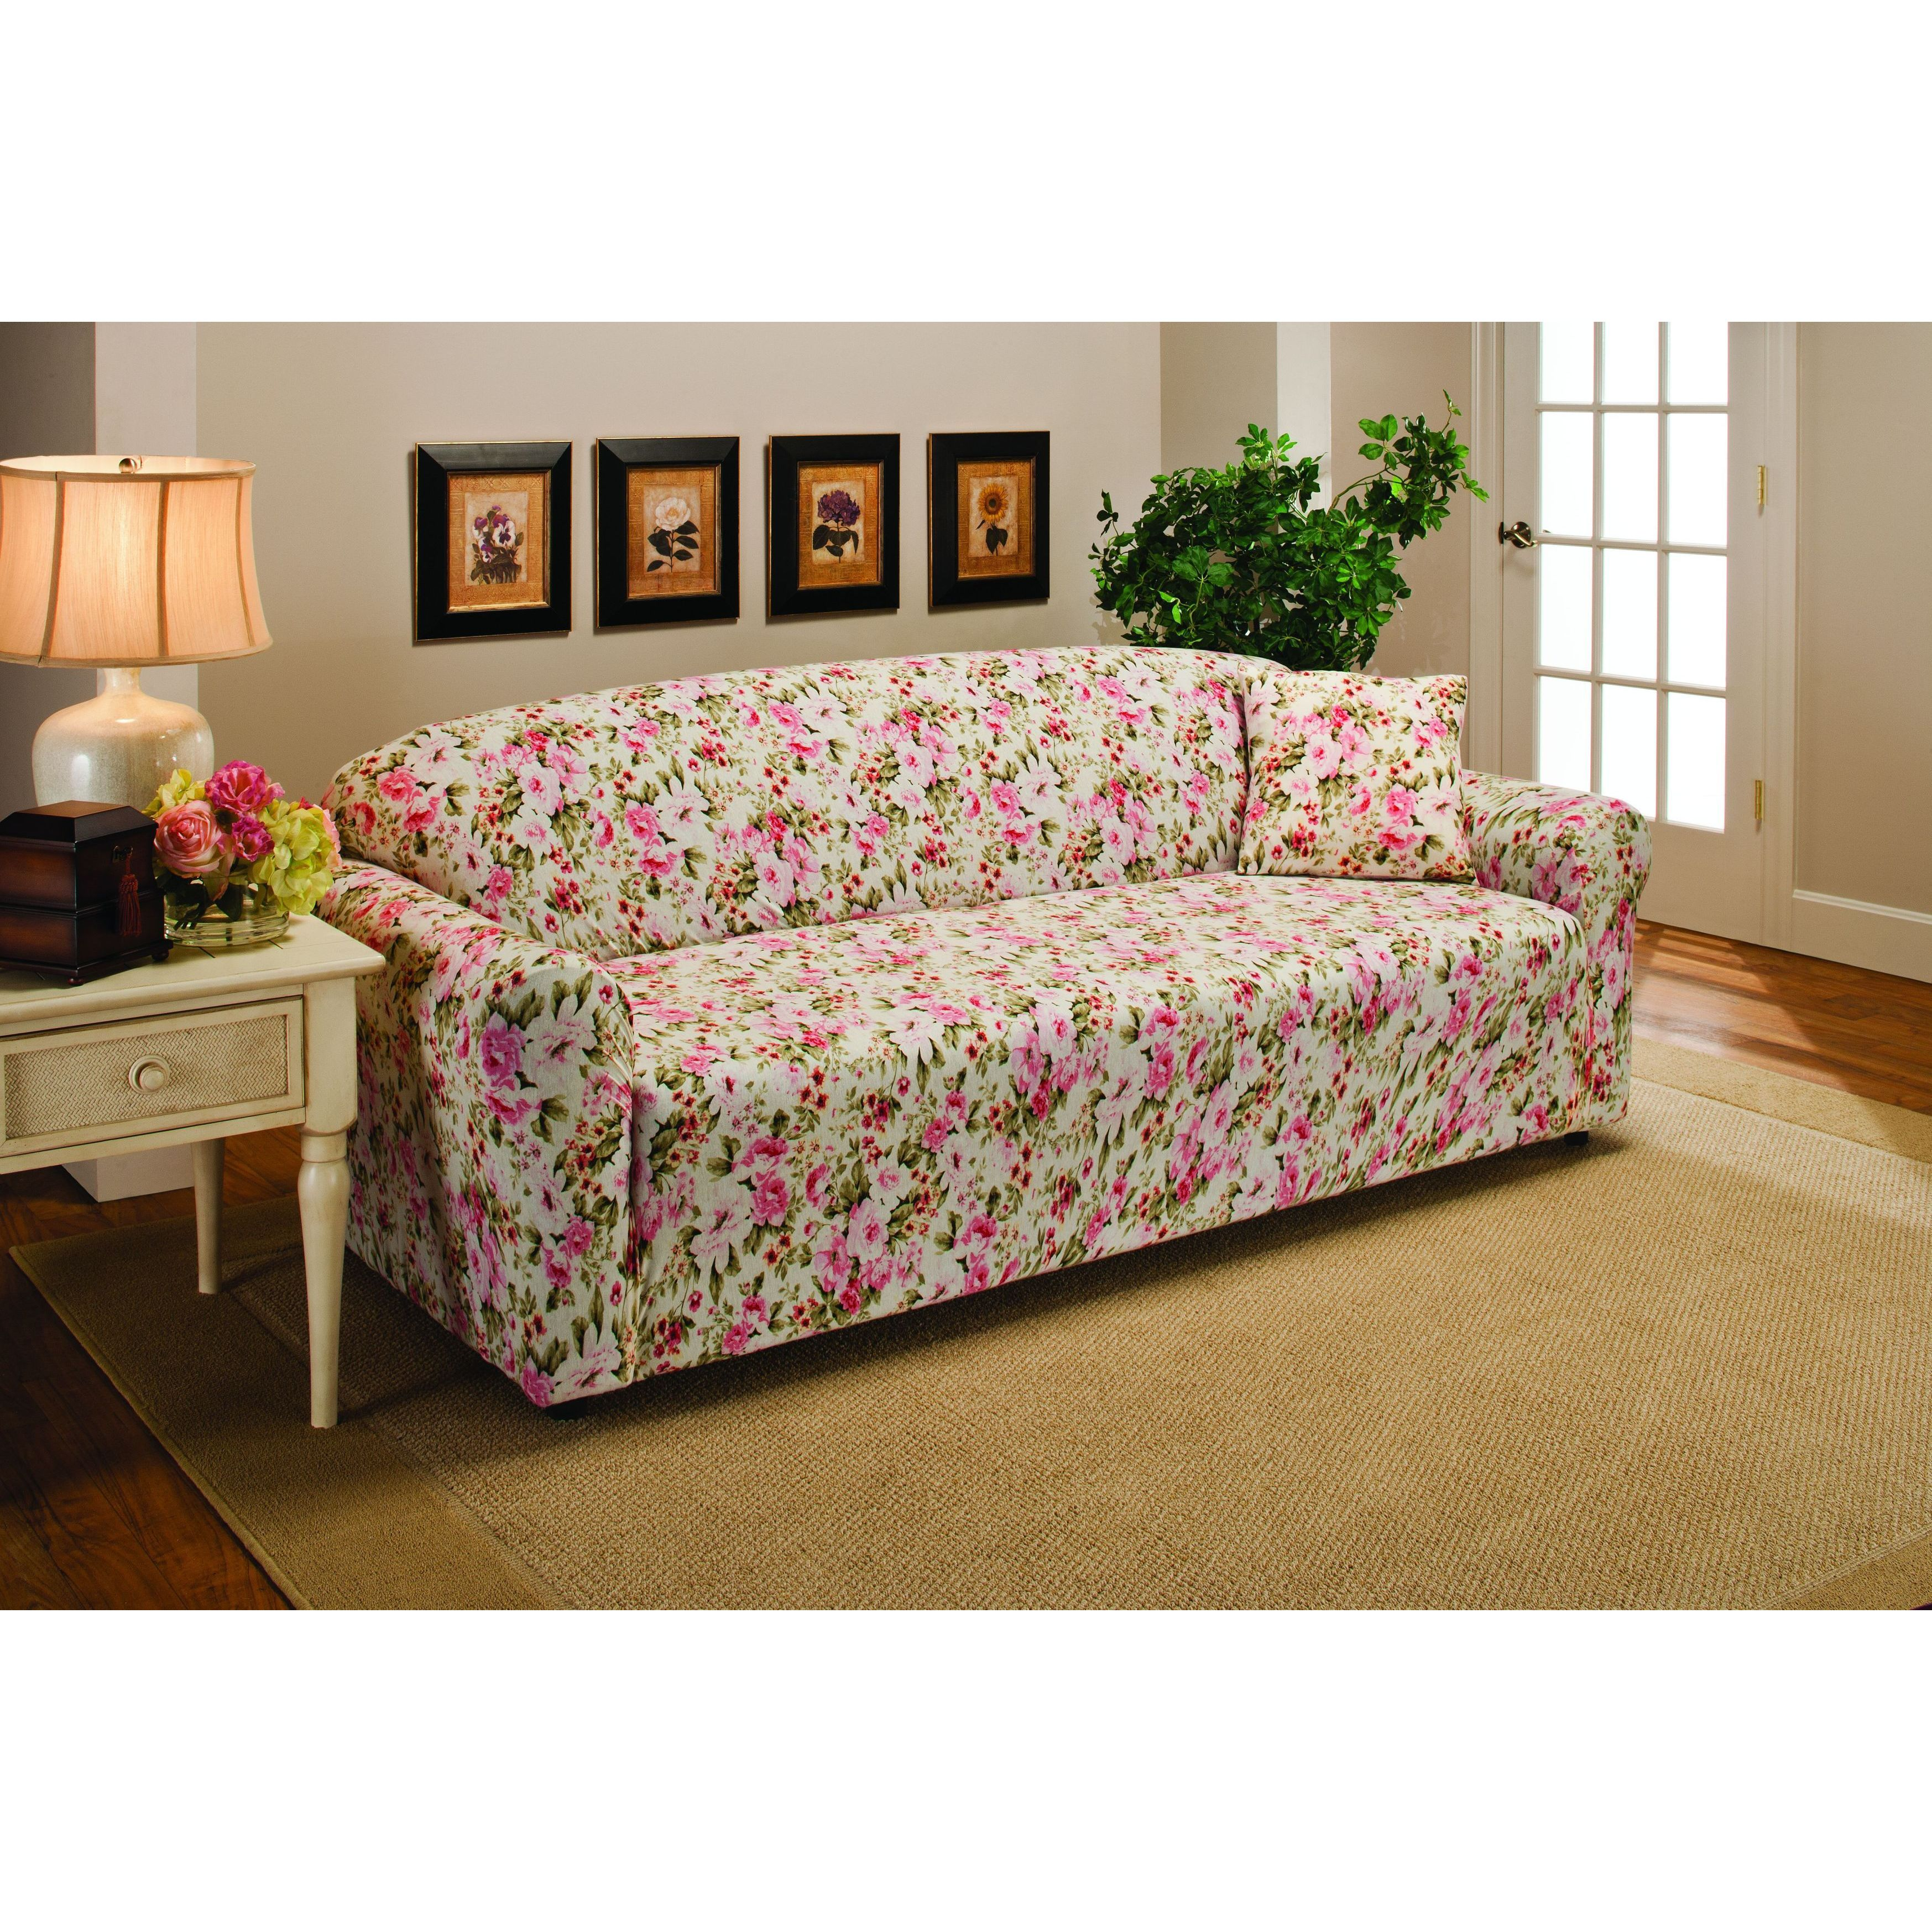 Pink Sofa Couch Slipcovers Online At Our Best Furniture Covers Deals